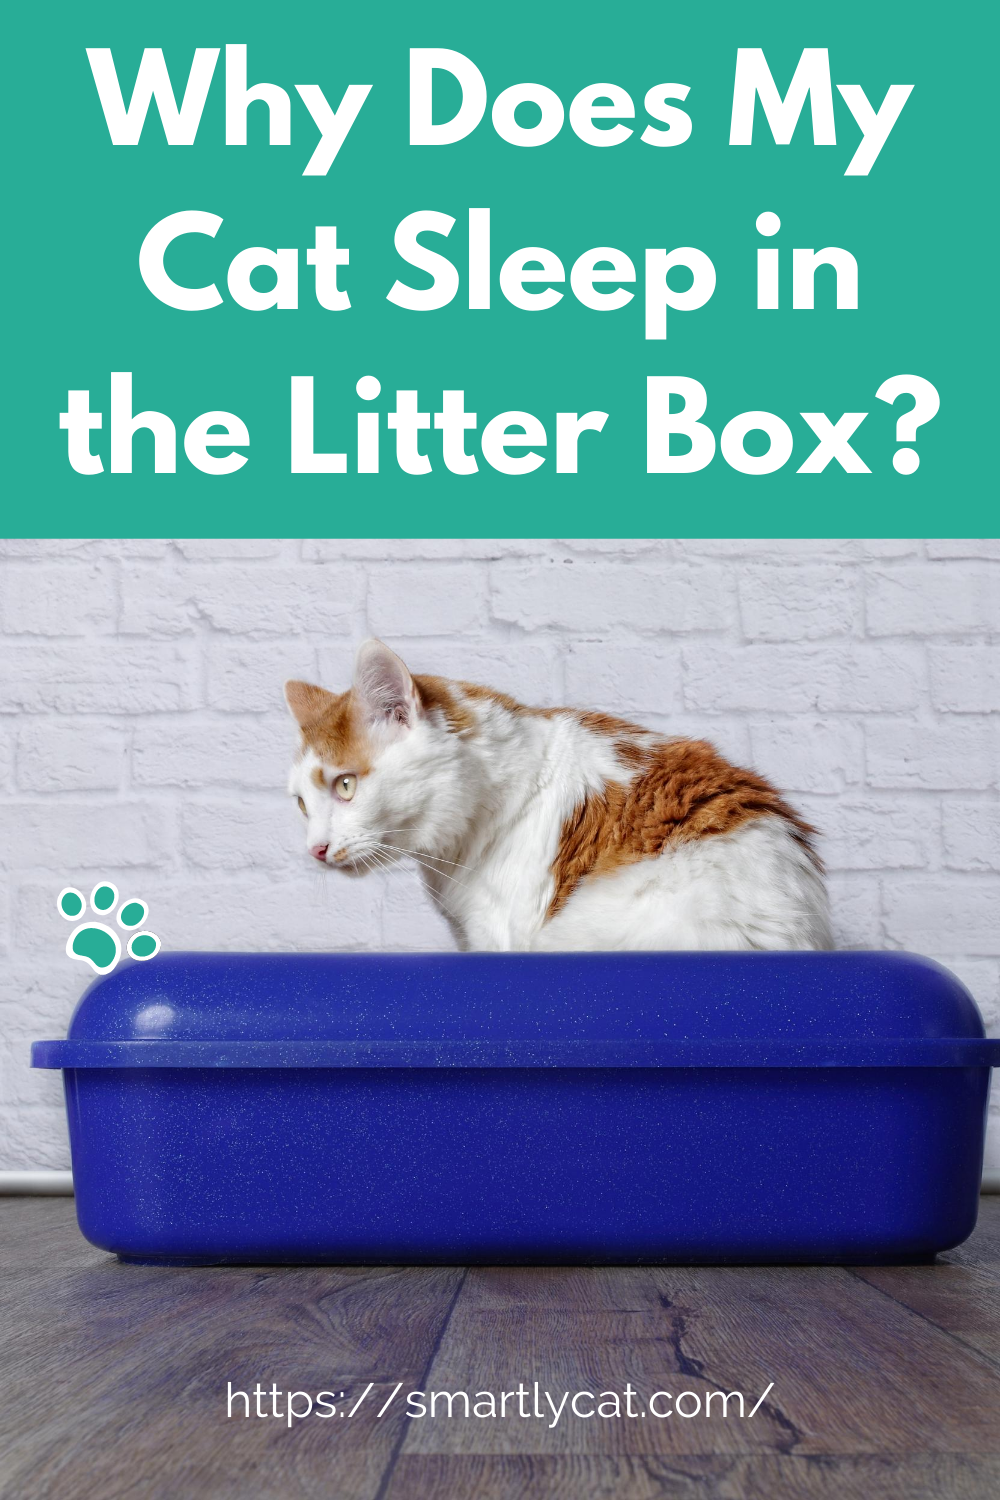 Why Does My Cat Sleep In The Litter Box In 2020 Cat Sleeping Litter Box Litter